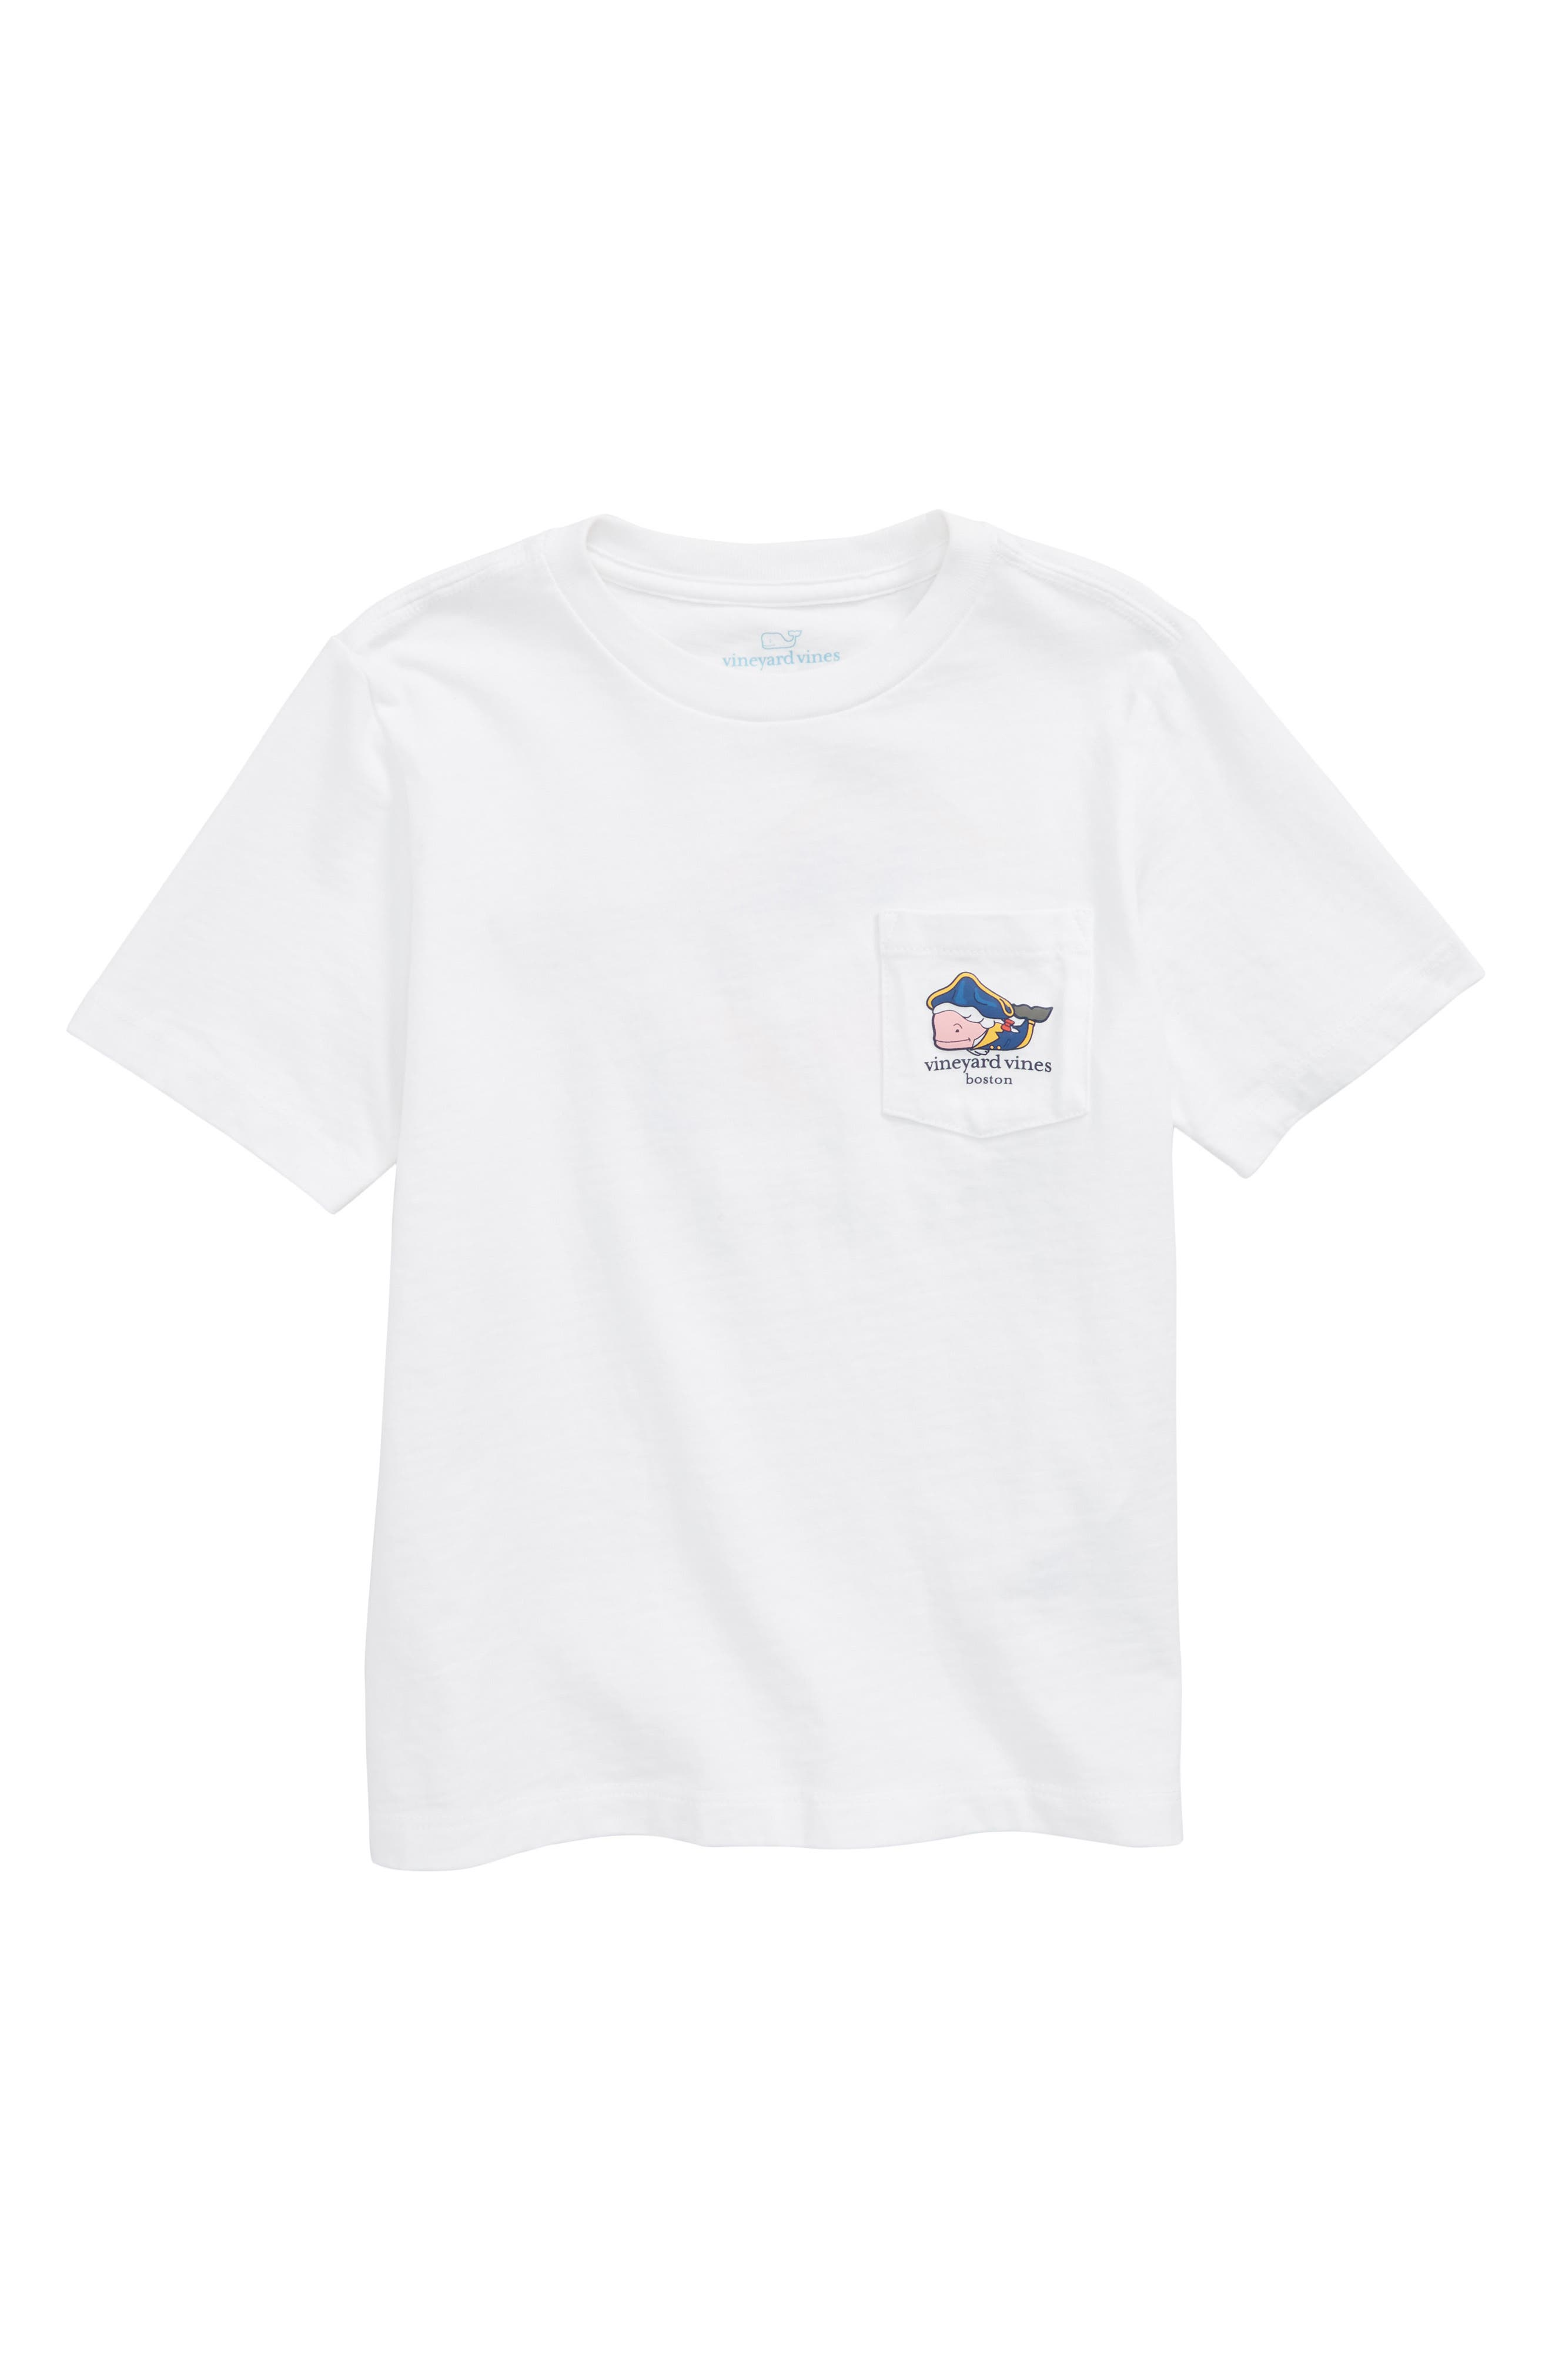 Main Image - vineyard vines Boston Whale Pocket T-Shirt (Toddler Boys, Little Boys & Big Boys)